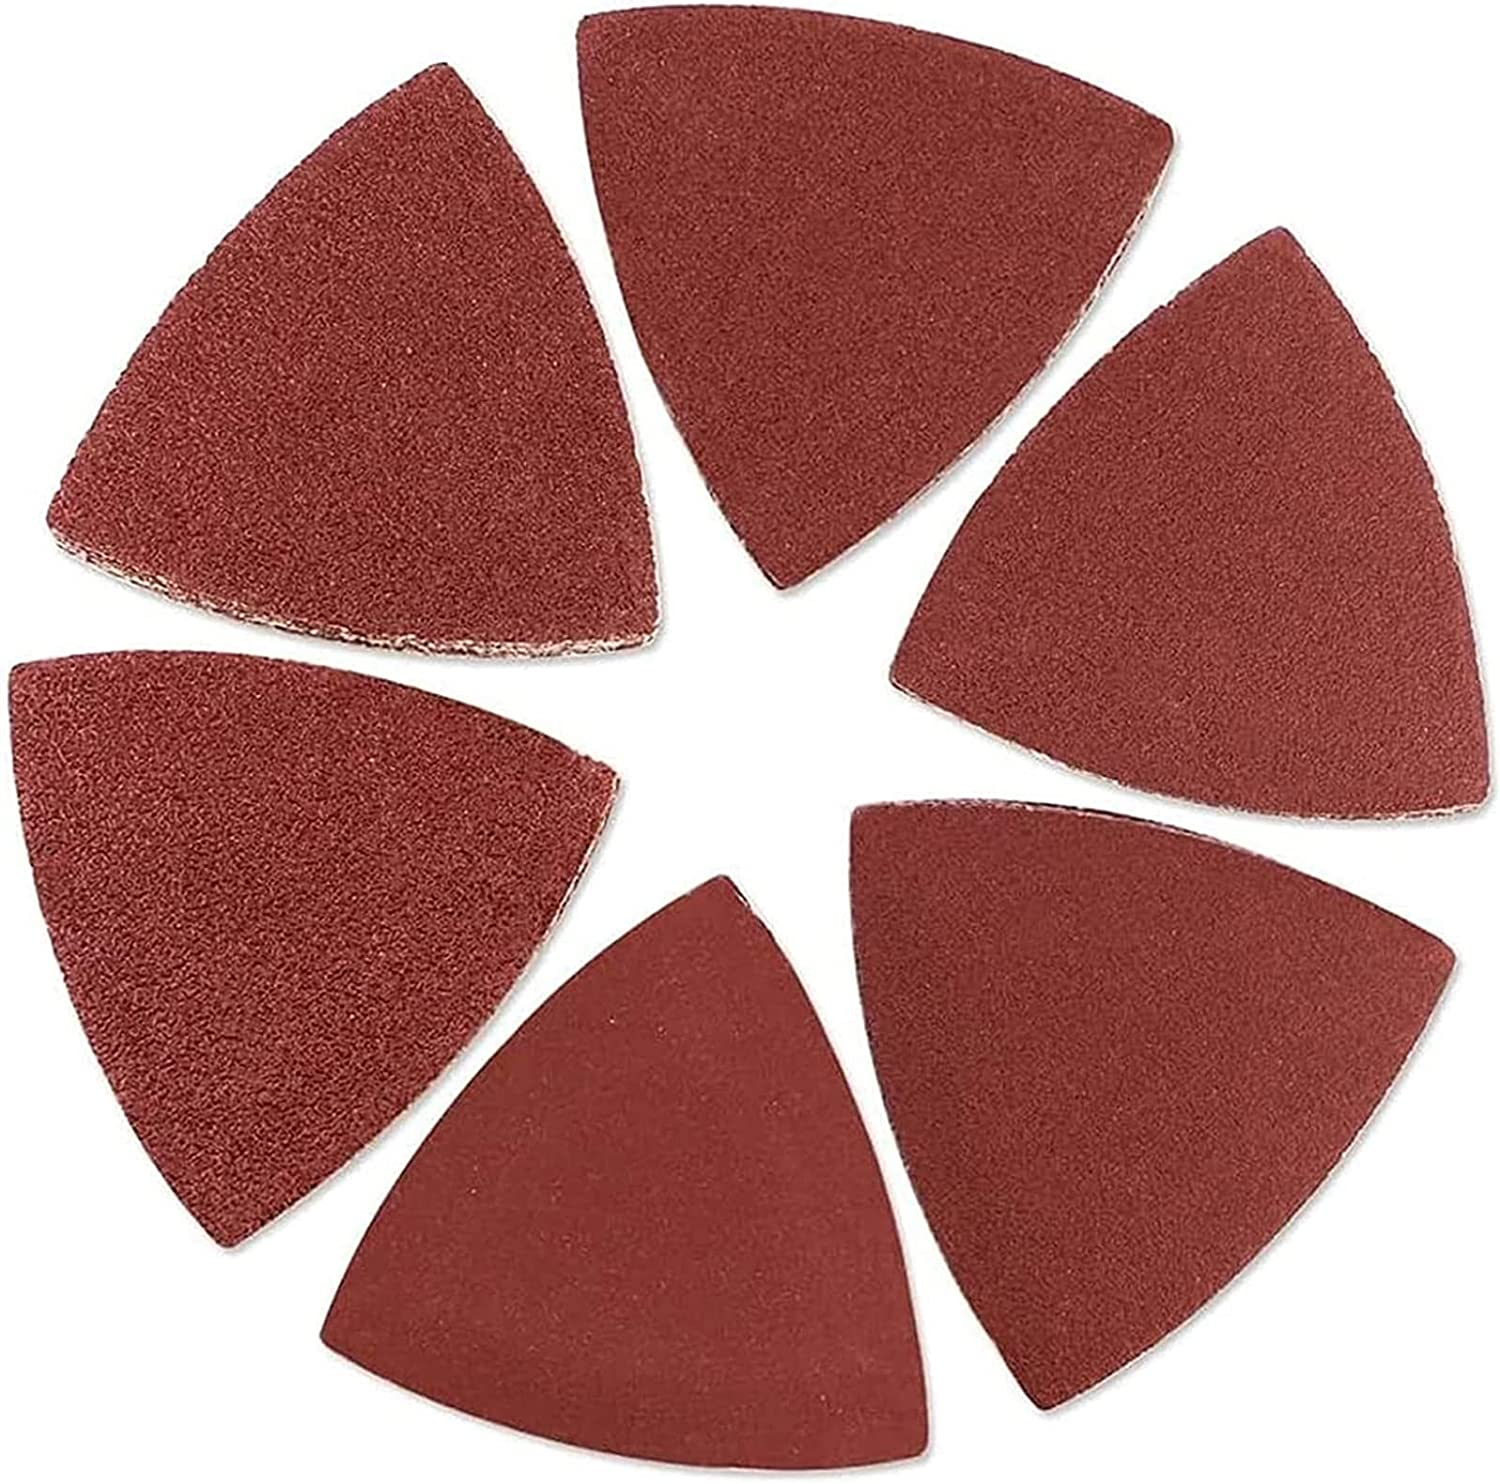 100pcs Triangular Seattle Mall Sandpaper Today's only Hook Sanding Loop Triangle Sheets